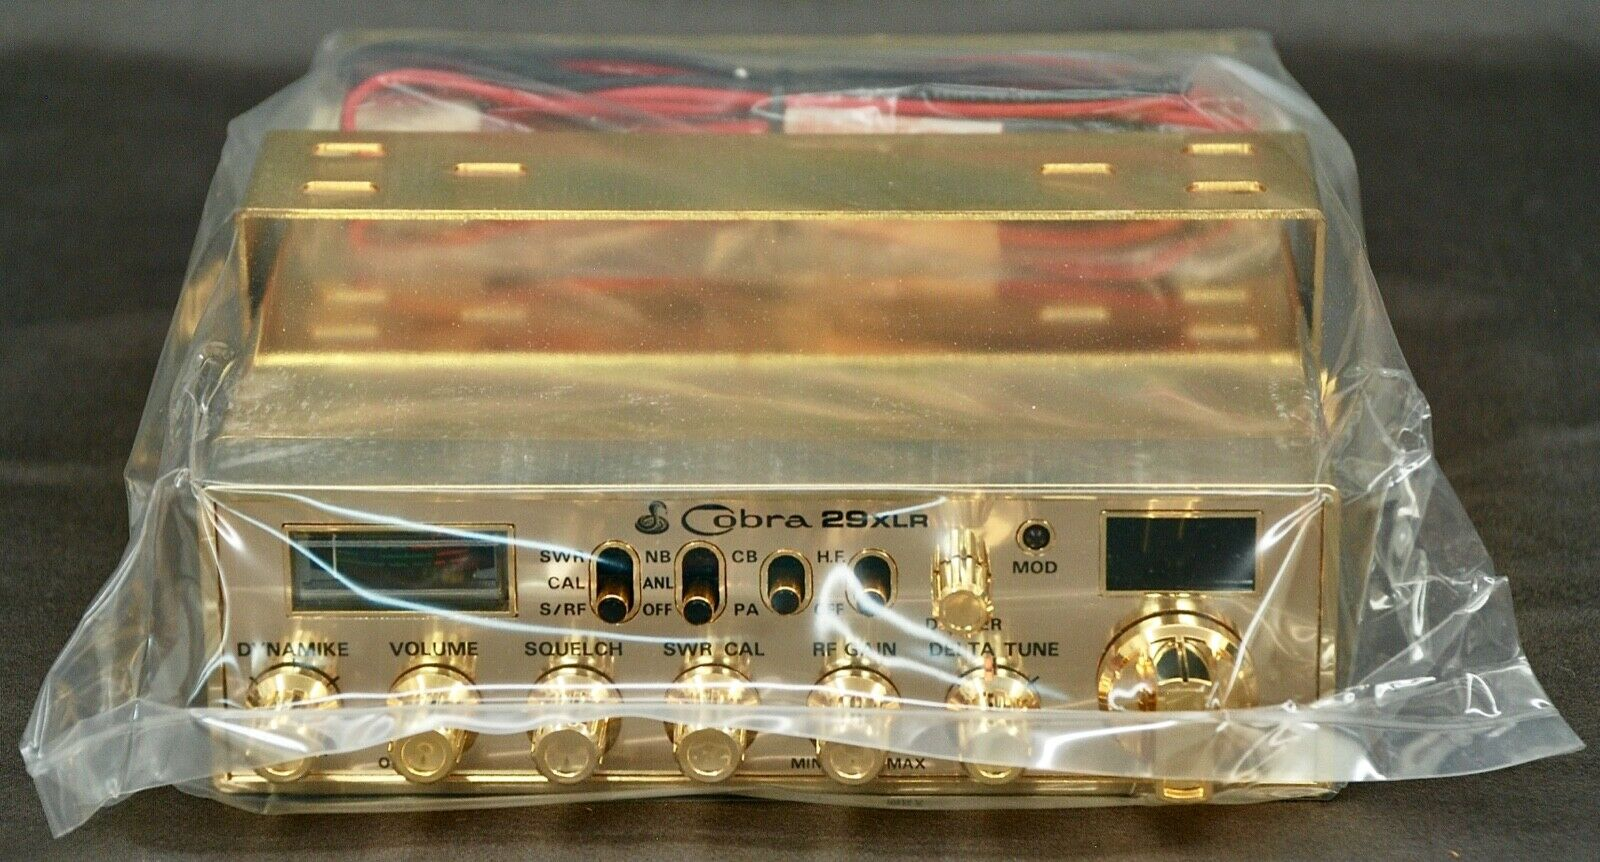 COBRA 29XLR Gold Plated Special Edition - New Old Stock. Available Now for 745.00